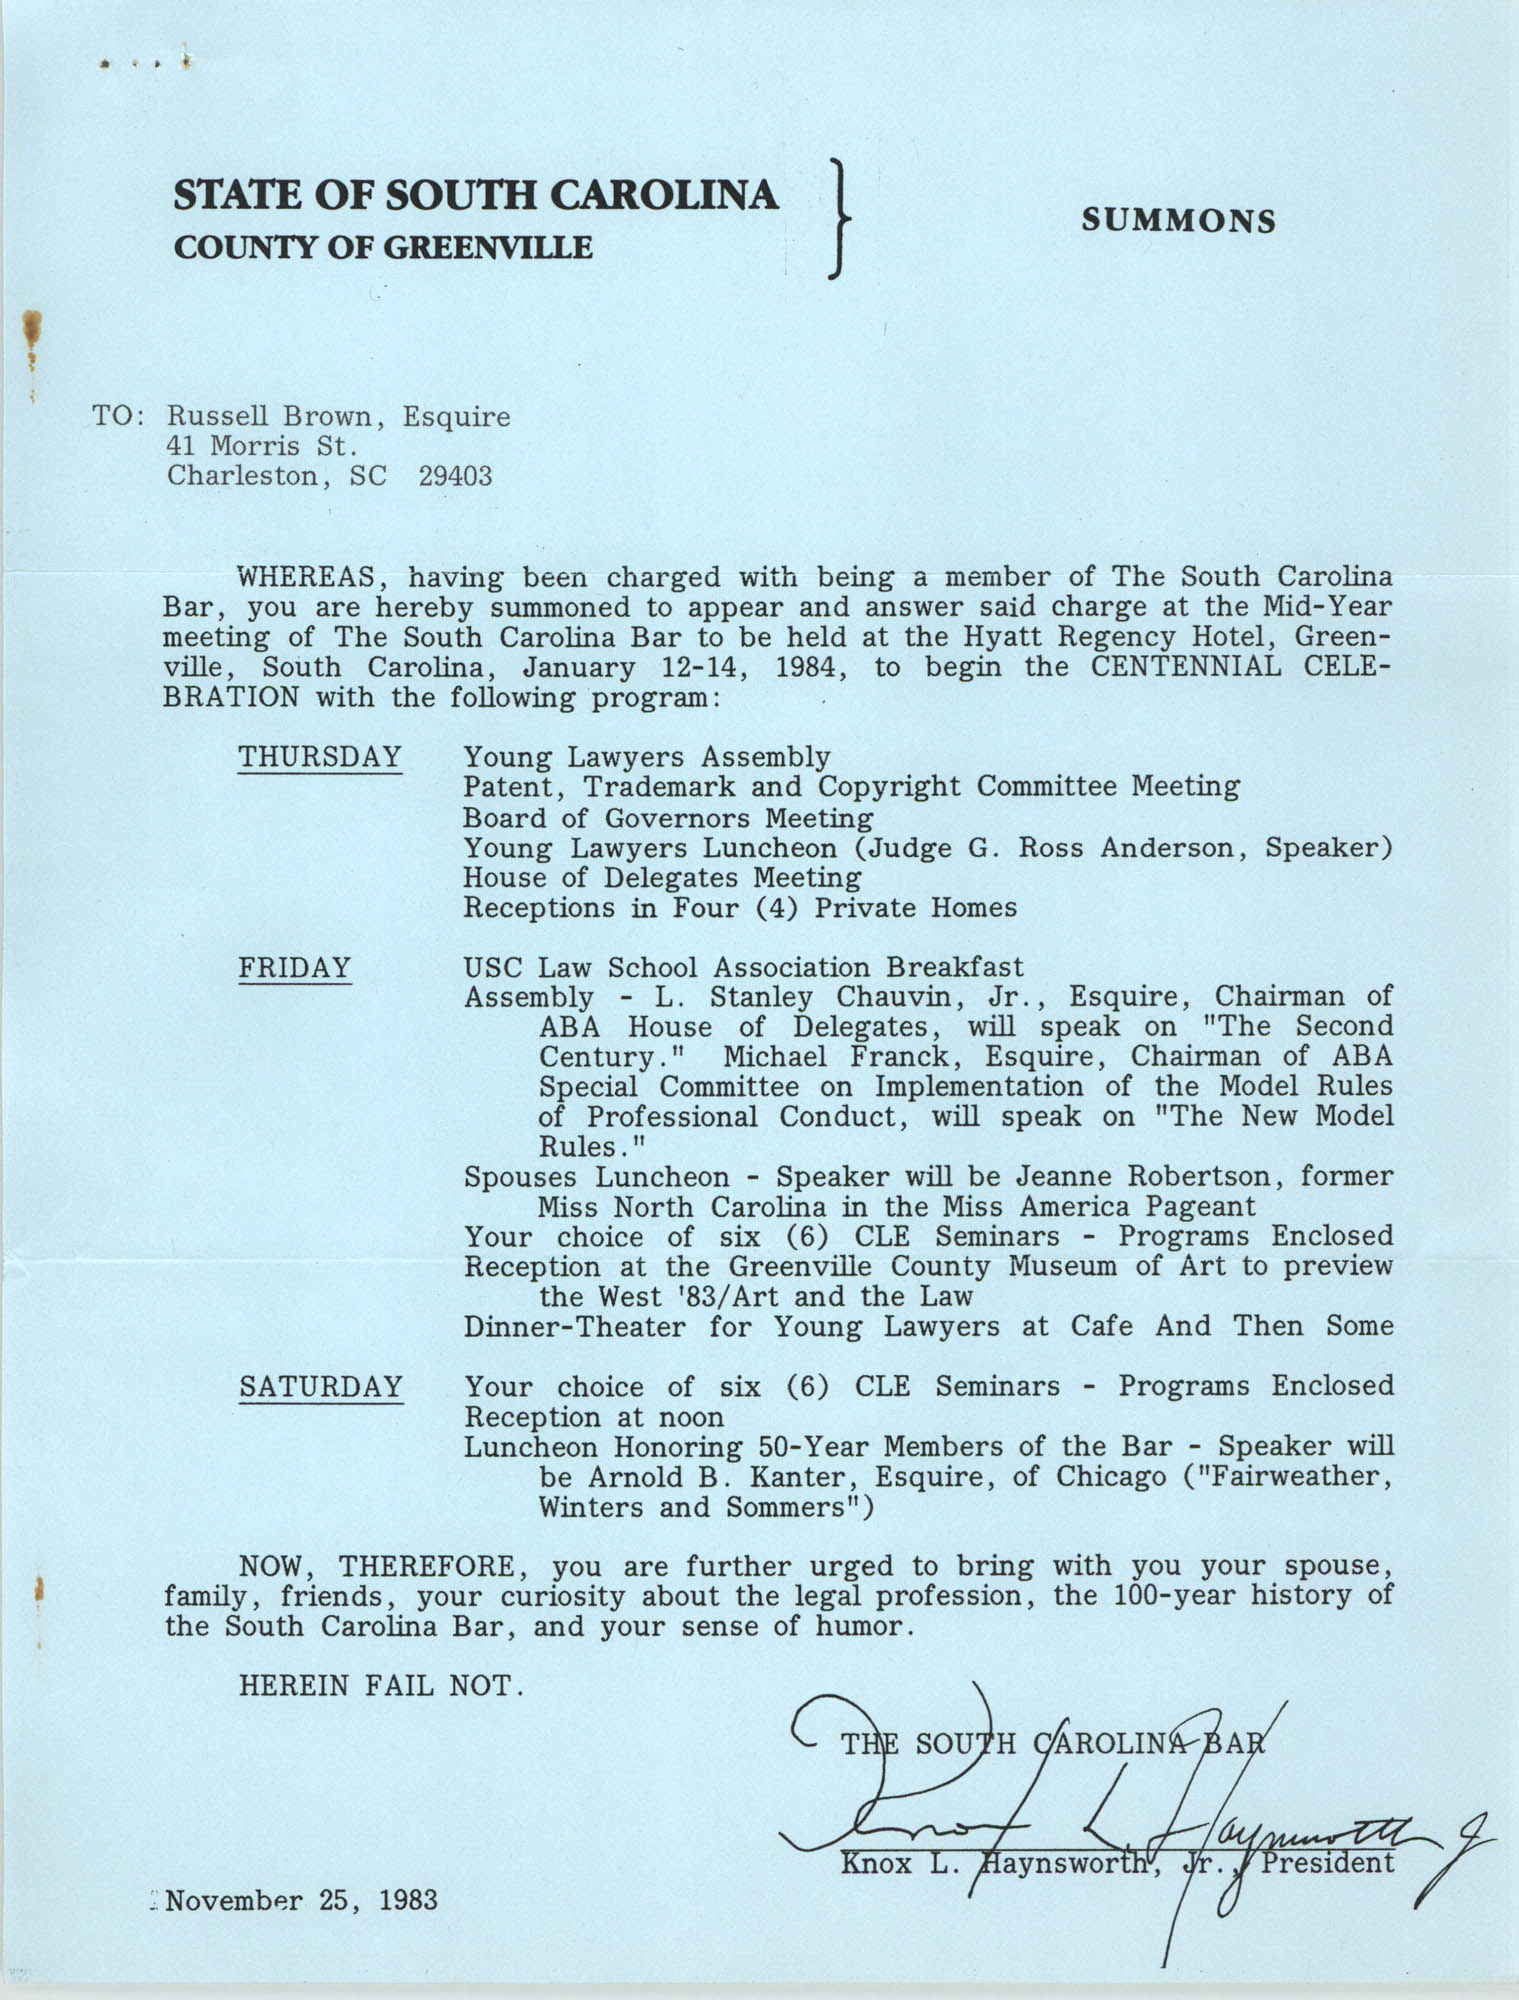 Letter from Knox L. Haynsworth Jr. to Russell Brown, November 25, 1983